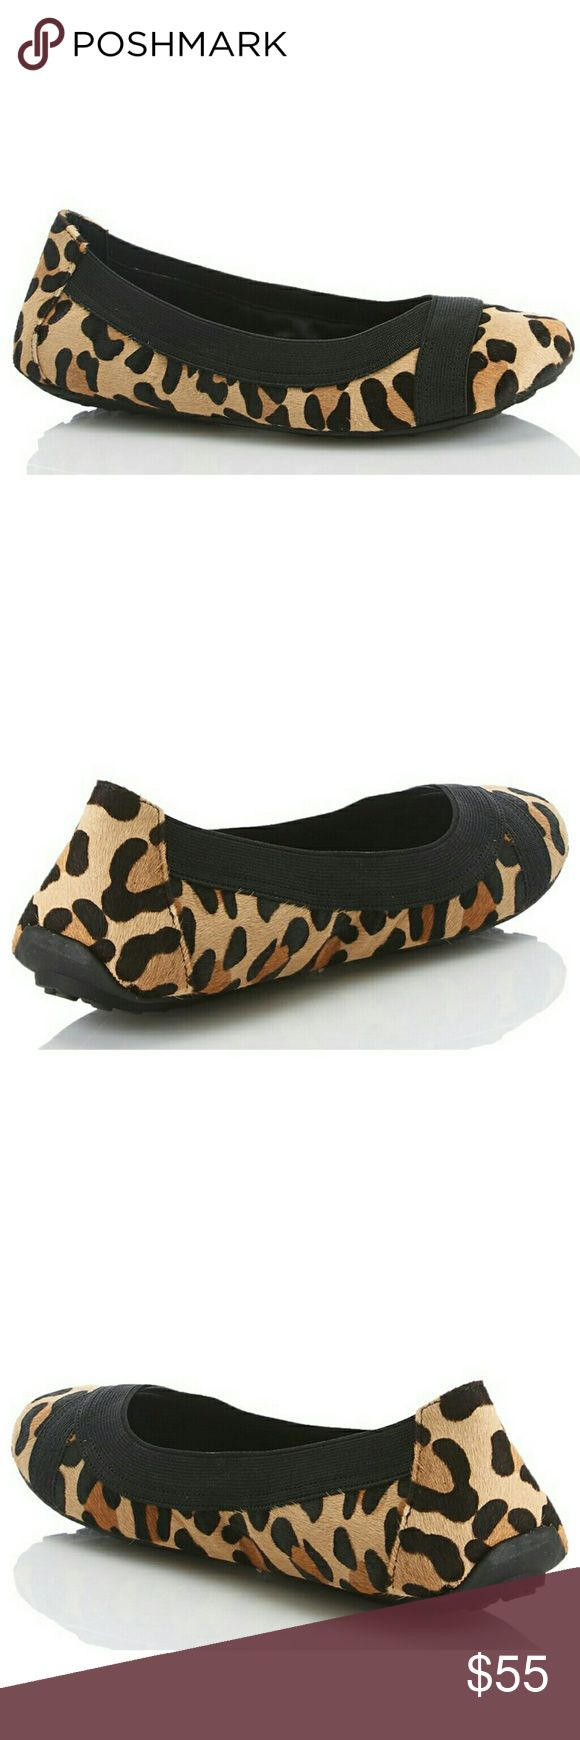 New! Adam Tucker Me Too Ballet Flats Animal Print An elasticized topline perfects the fit of quintessential animal print flats. A foam-padded insole and an ultra-flexible sole offer ultimate comfort, cementing the versatile style as a daily favorite.  Brushed faux fur exterior with animal print  Elasticized top for a comfortable fit  Padded insole  Man-made upper/lining/rubber sole  By Adam Tucker by Me Too Adam Tucker Shoes Flats & Loafers